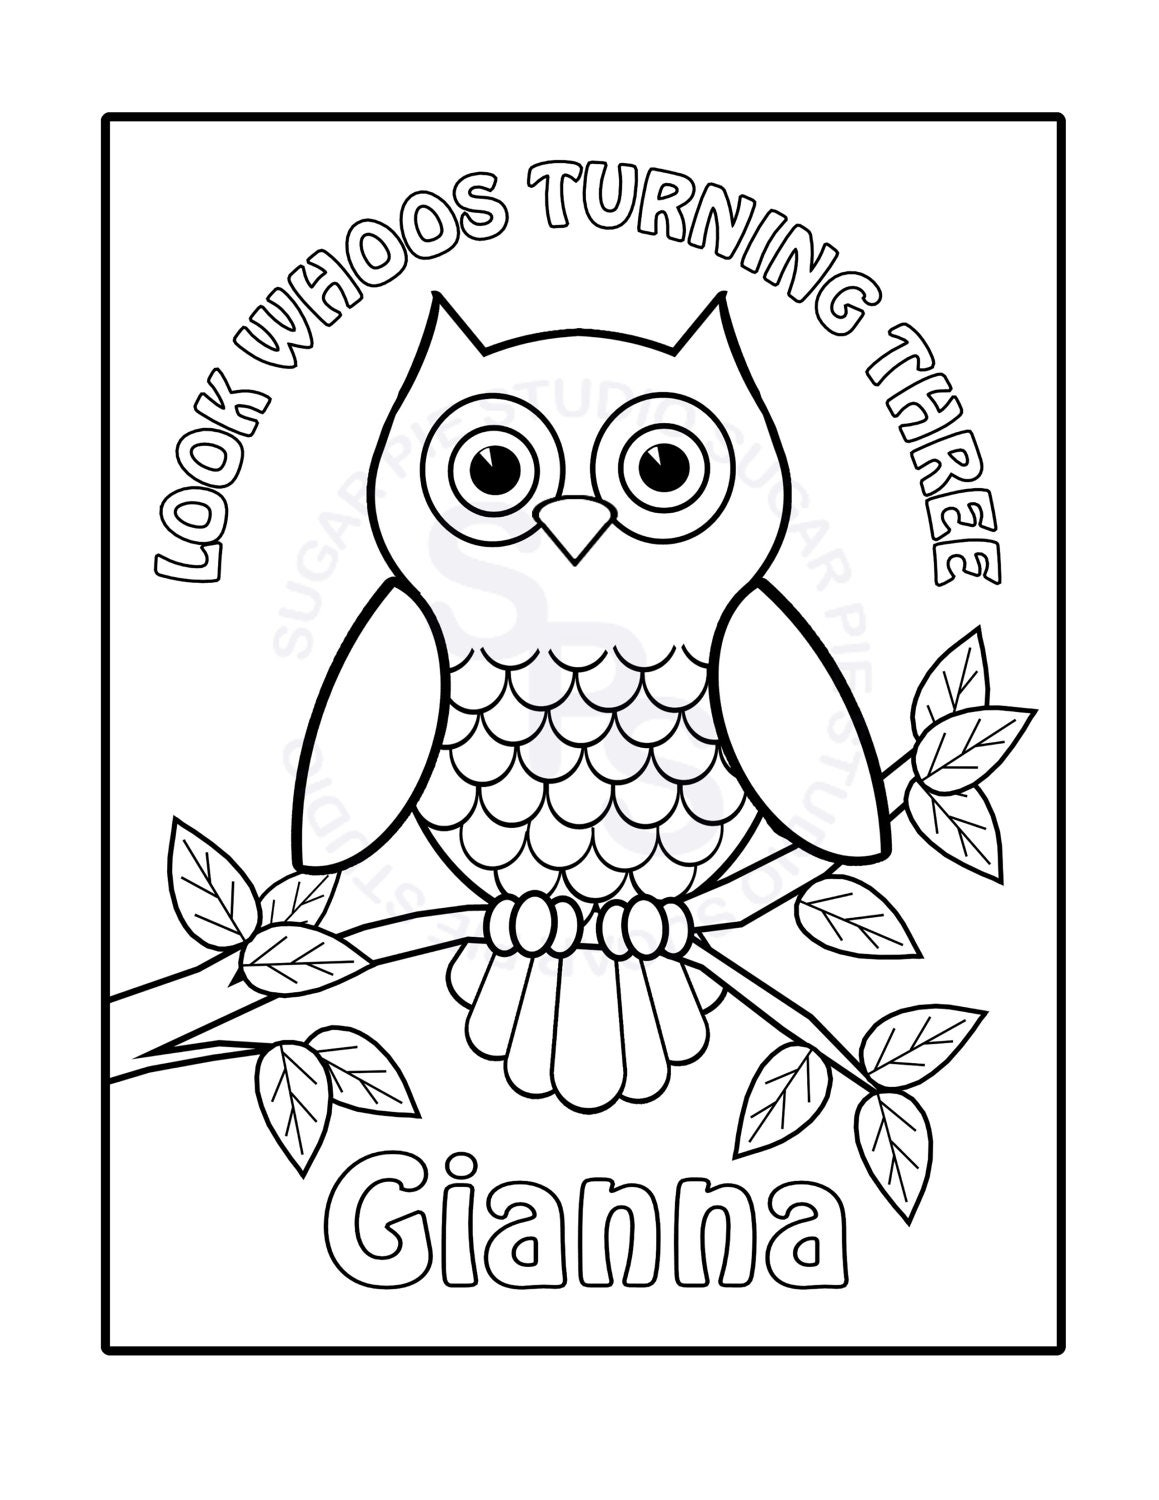 Cute Owl Coloring Pages To Print Leversetdujour.info